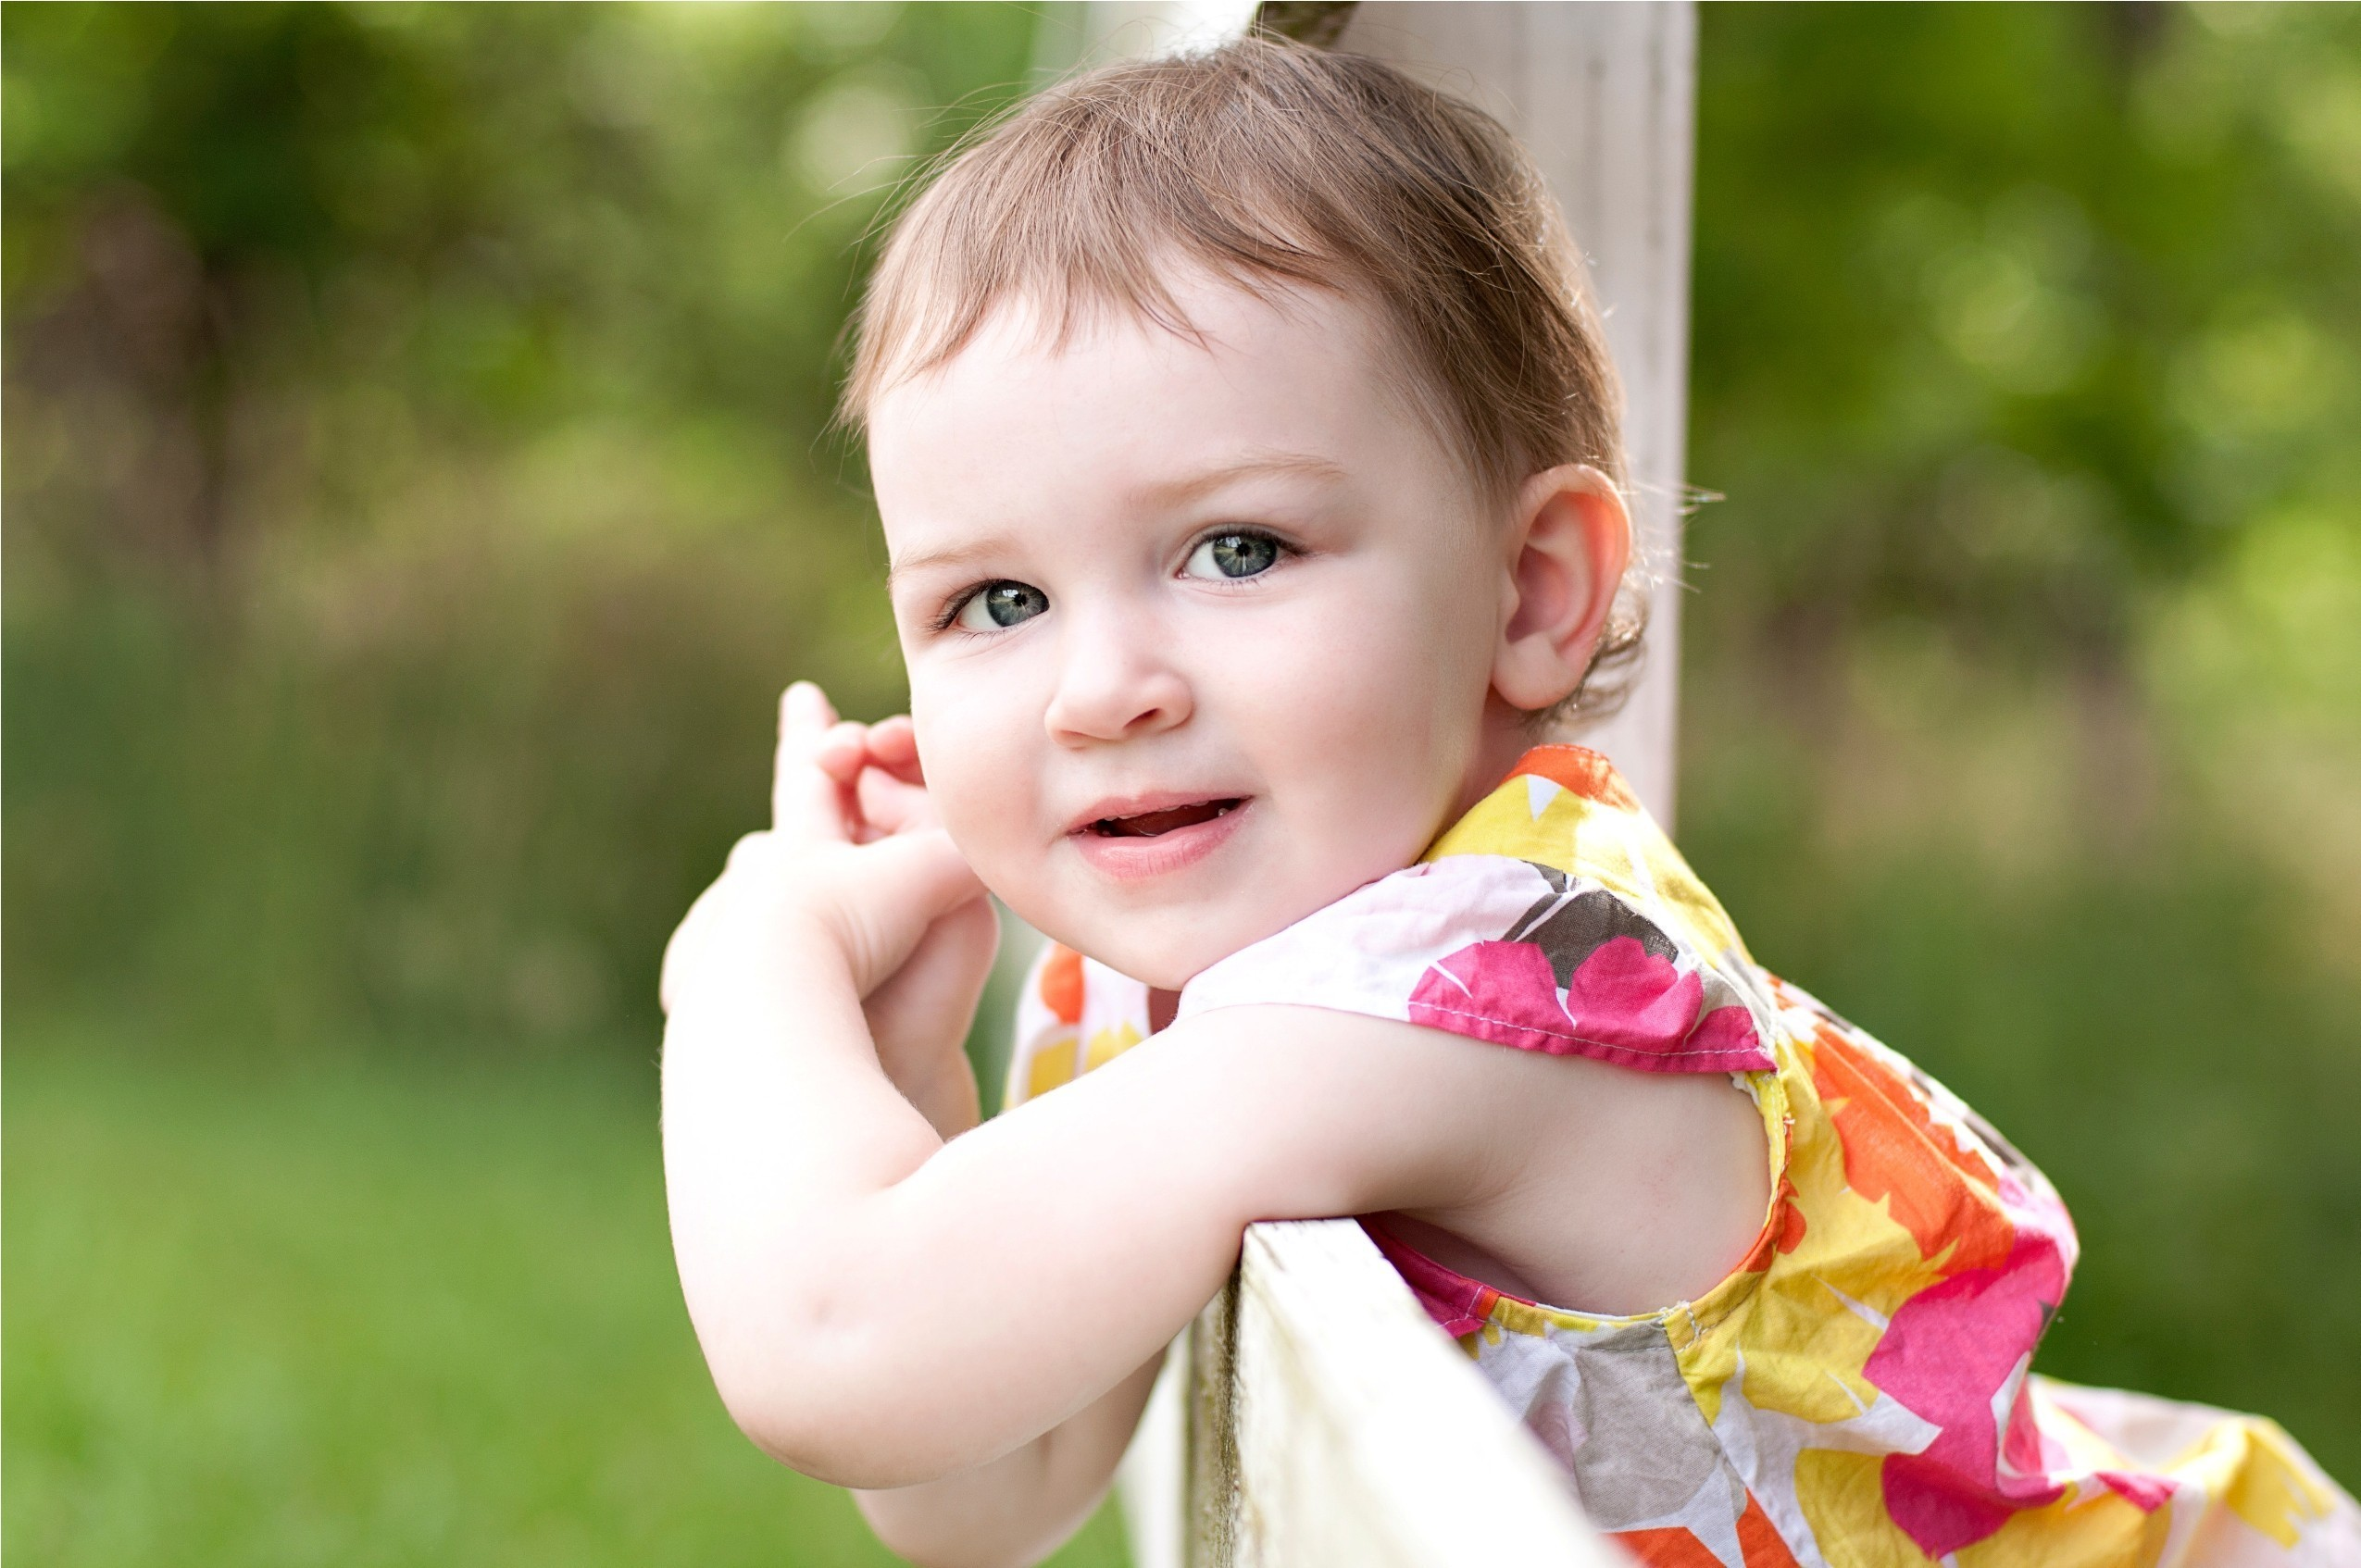 beautiful babies wallpapers 2018 (66+ background pictures)